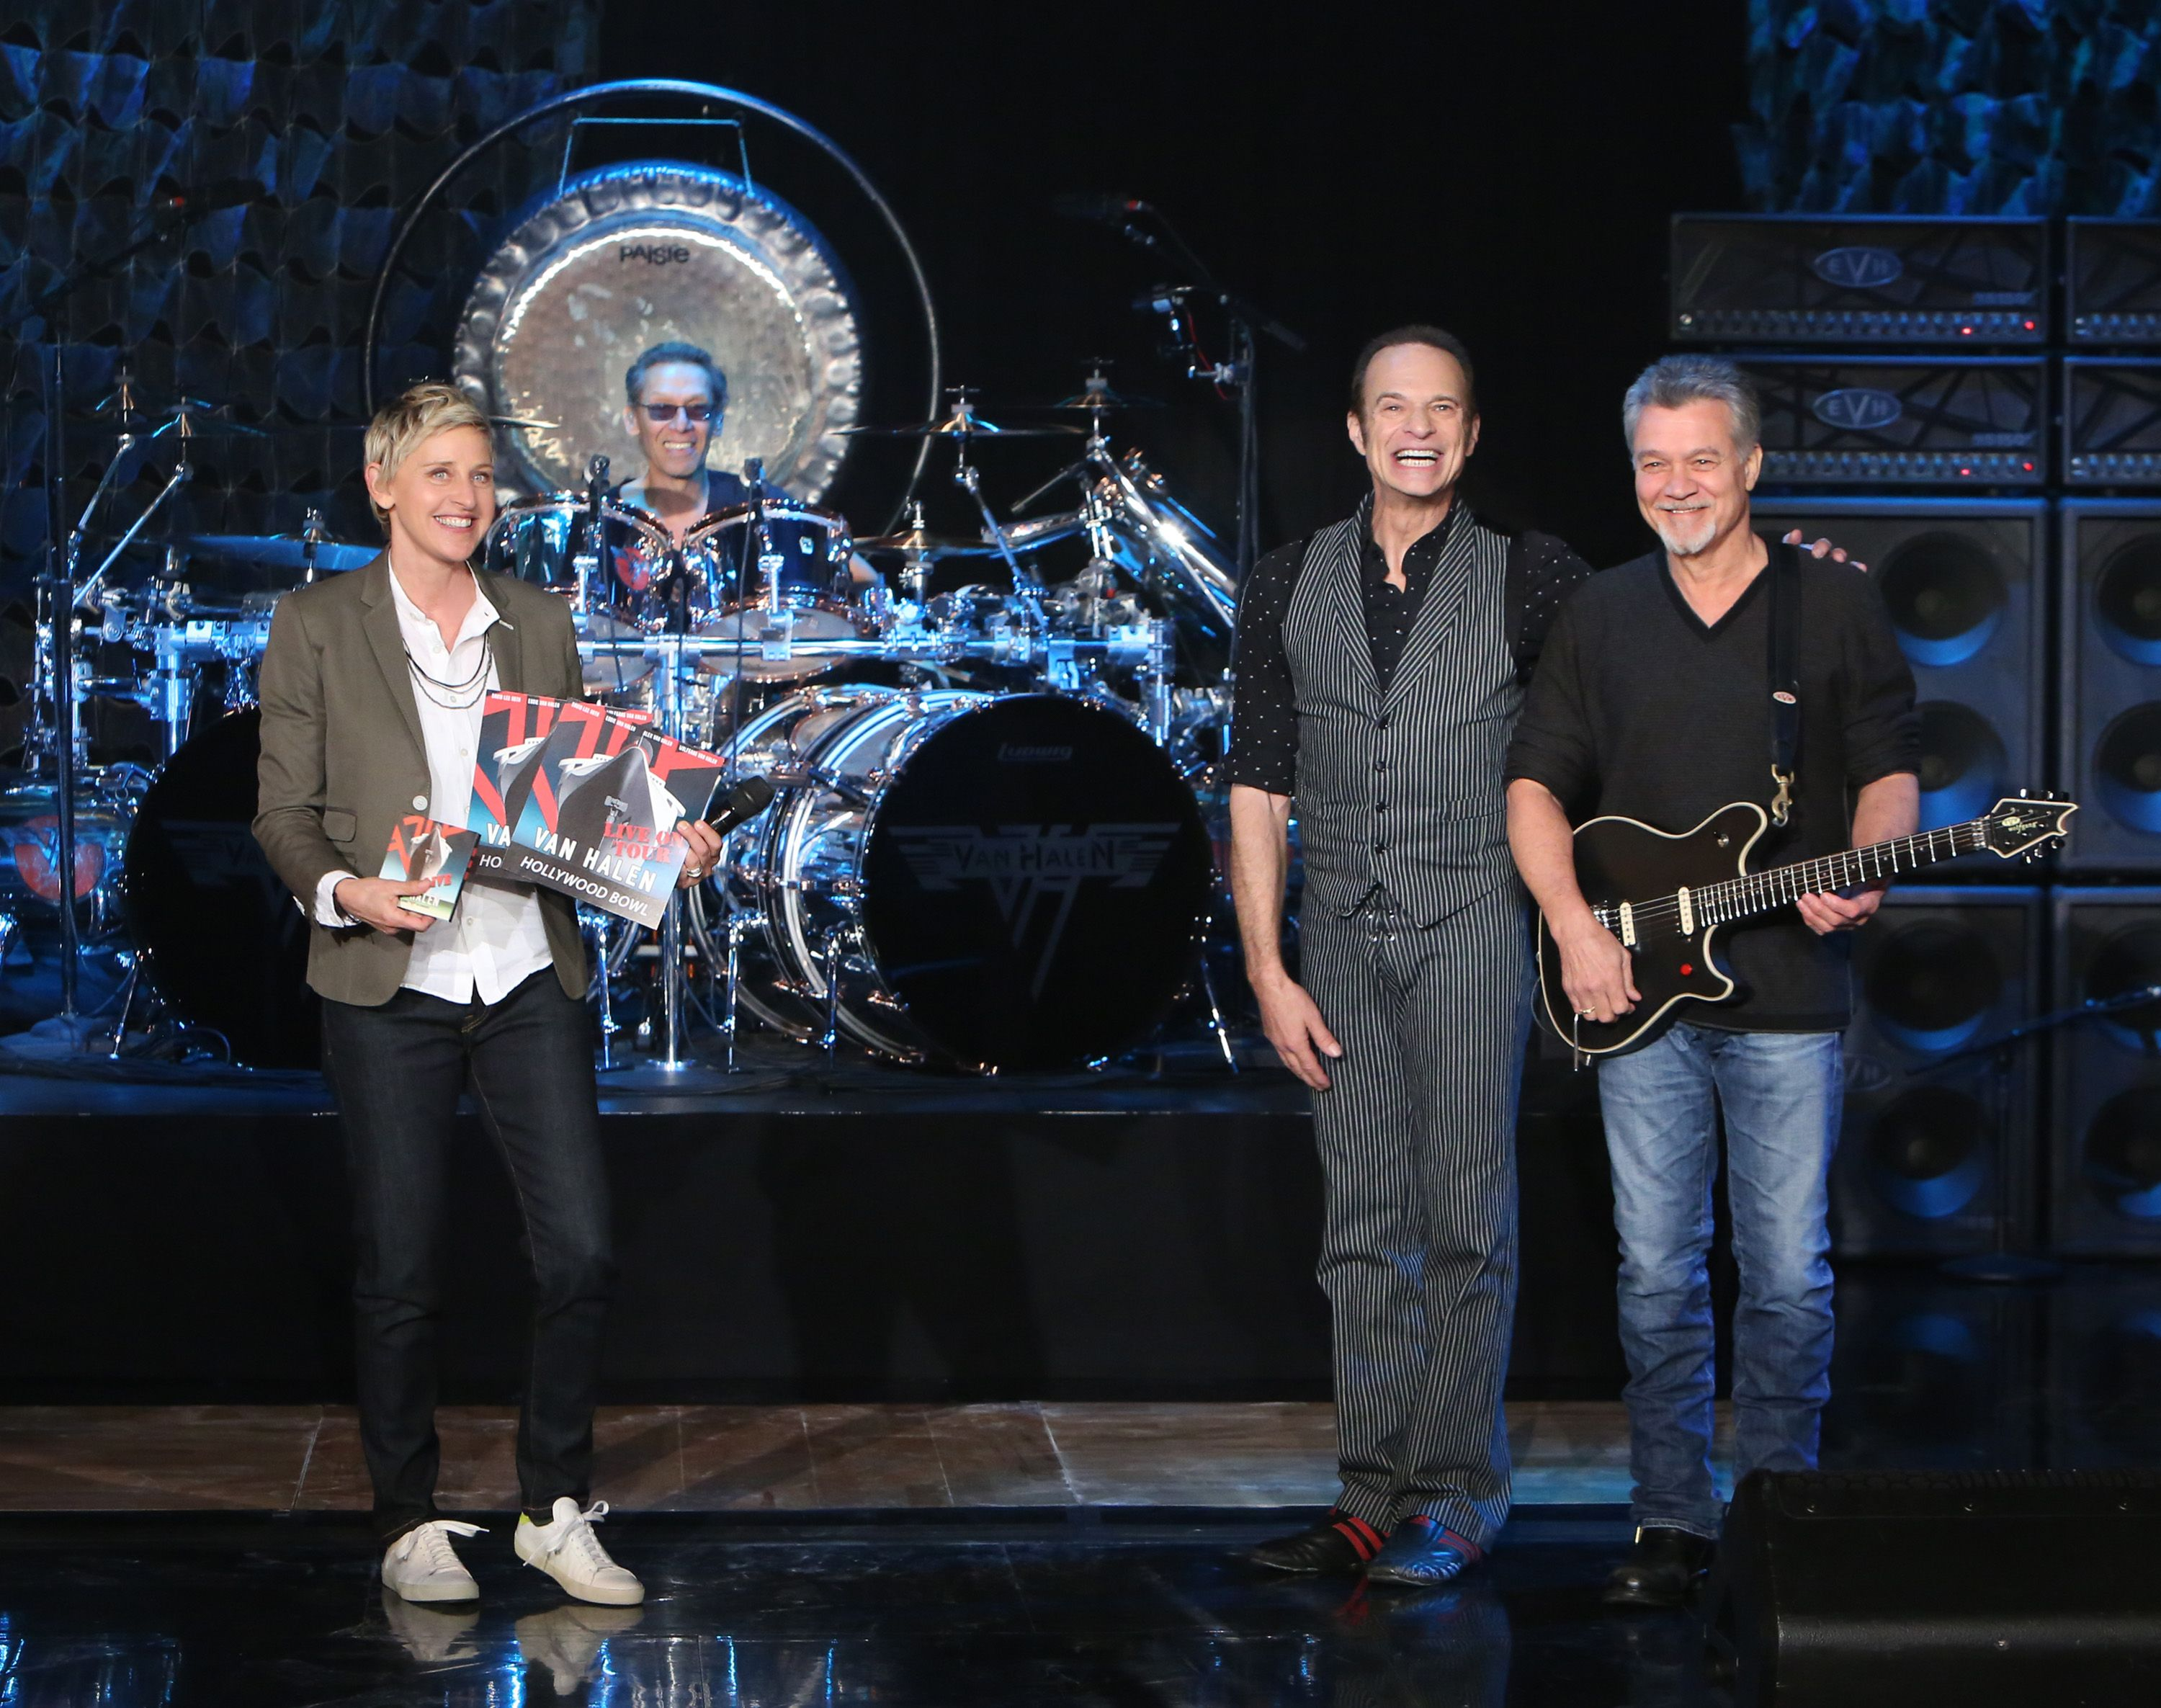 Today At 5 Van Halen Featuring David Lee Roth As Lead Vocals Makes A Daytime Exclusive Performance Of Their Class Van Halen Celebrity Interview The Ellen Show